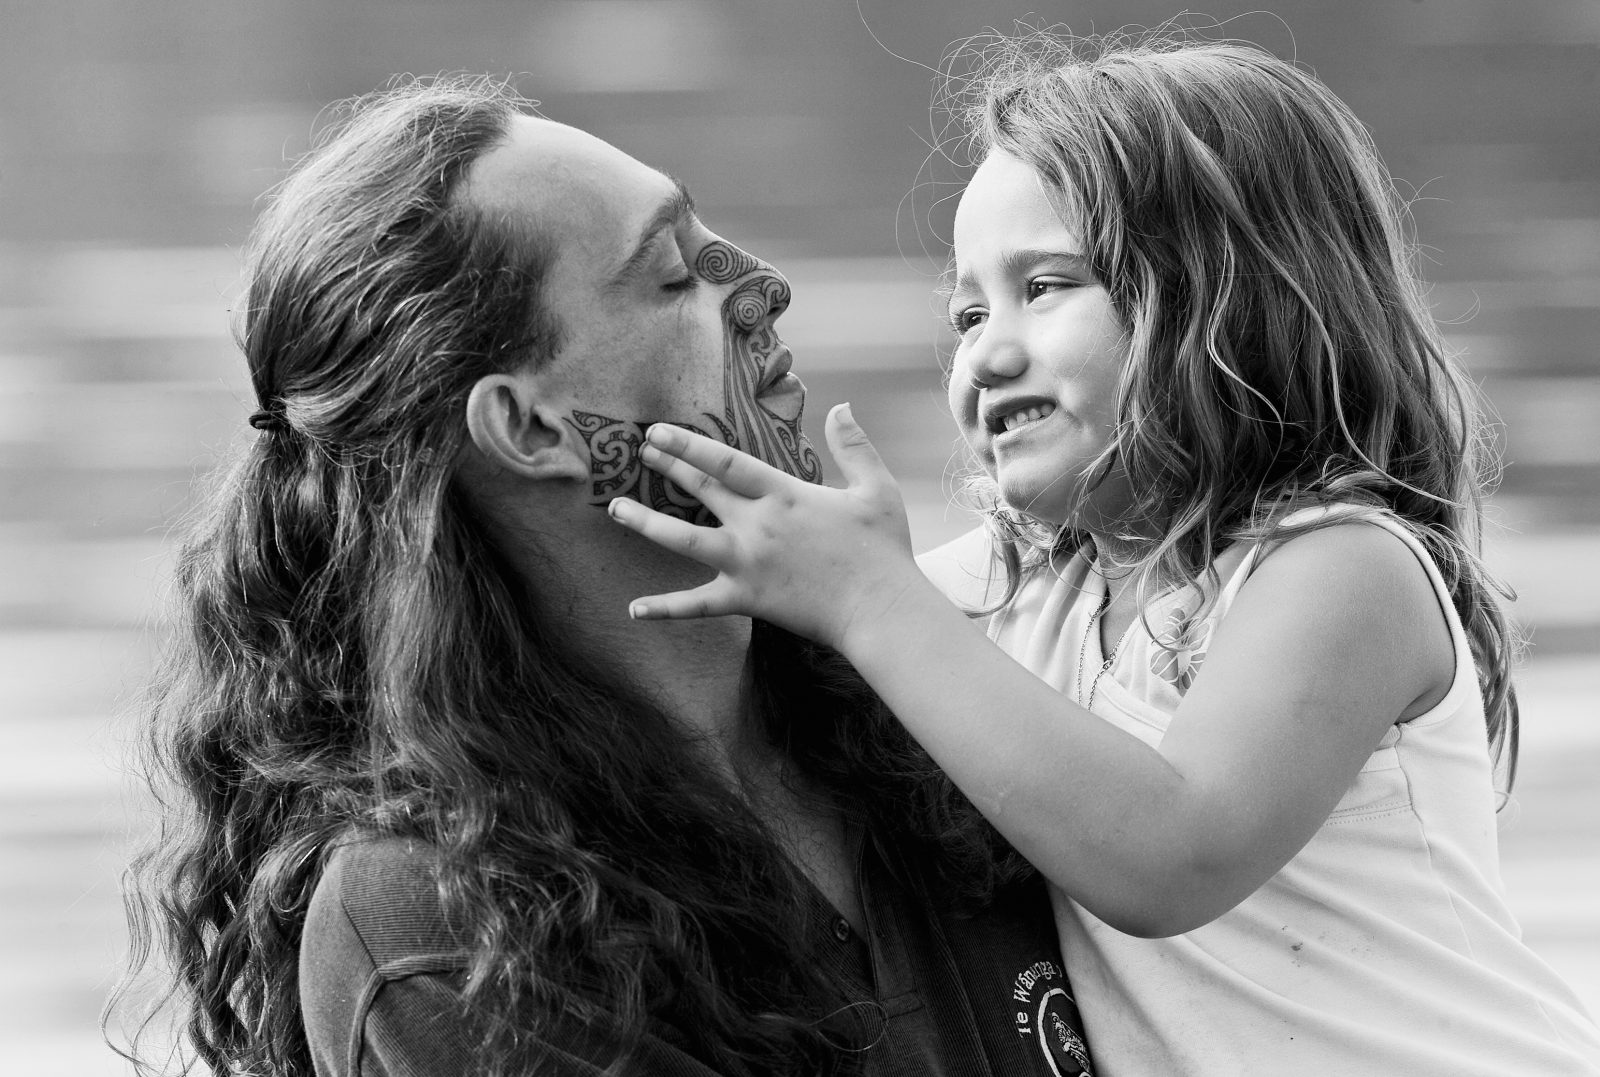 """""""Both Parina and Muriwai will put their fingers to my face, follow the lines and ask questions about what each line means. Muriwai was a bit concerned when she knew I was getting my moko done—she asked me if I will still be her father. I told her 'regardless of what Daddy does to his face, I will always be your father'. I think she thought that I would change as a person as well. I had to keep reassuring her that I'll be still her father, nothing's changed except my appearance."""" —Hohepa Hei"""